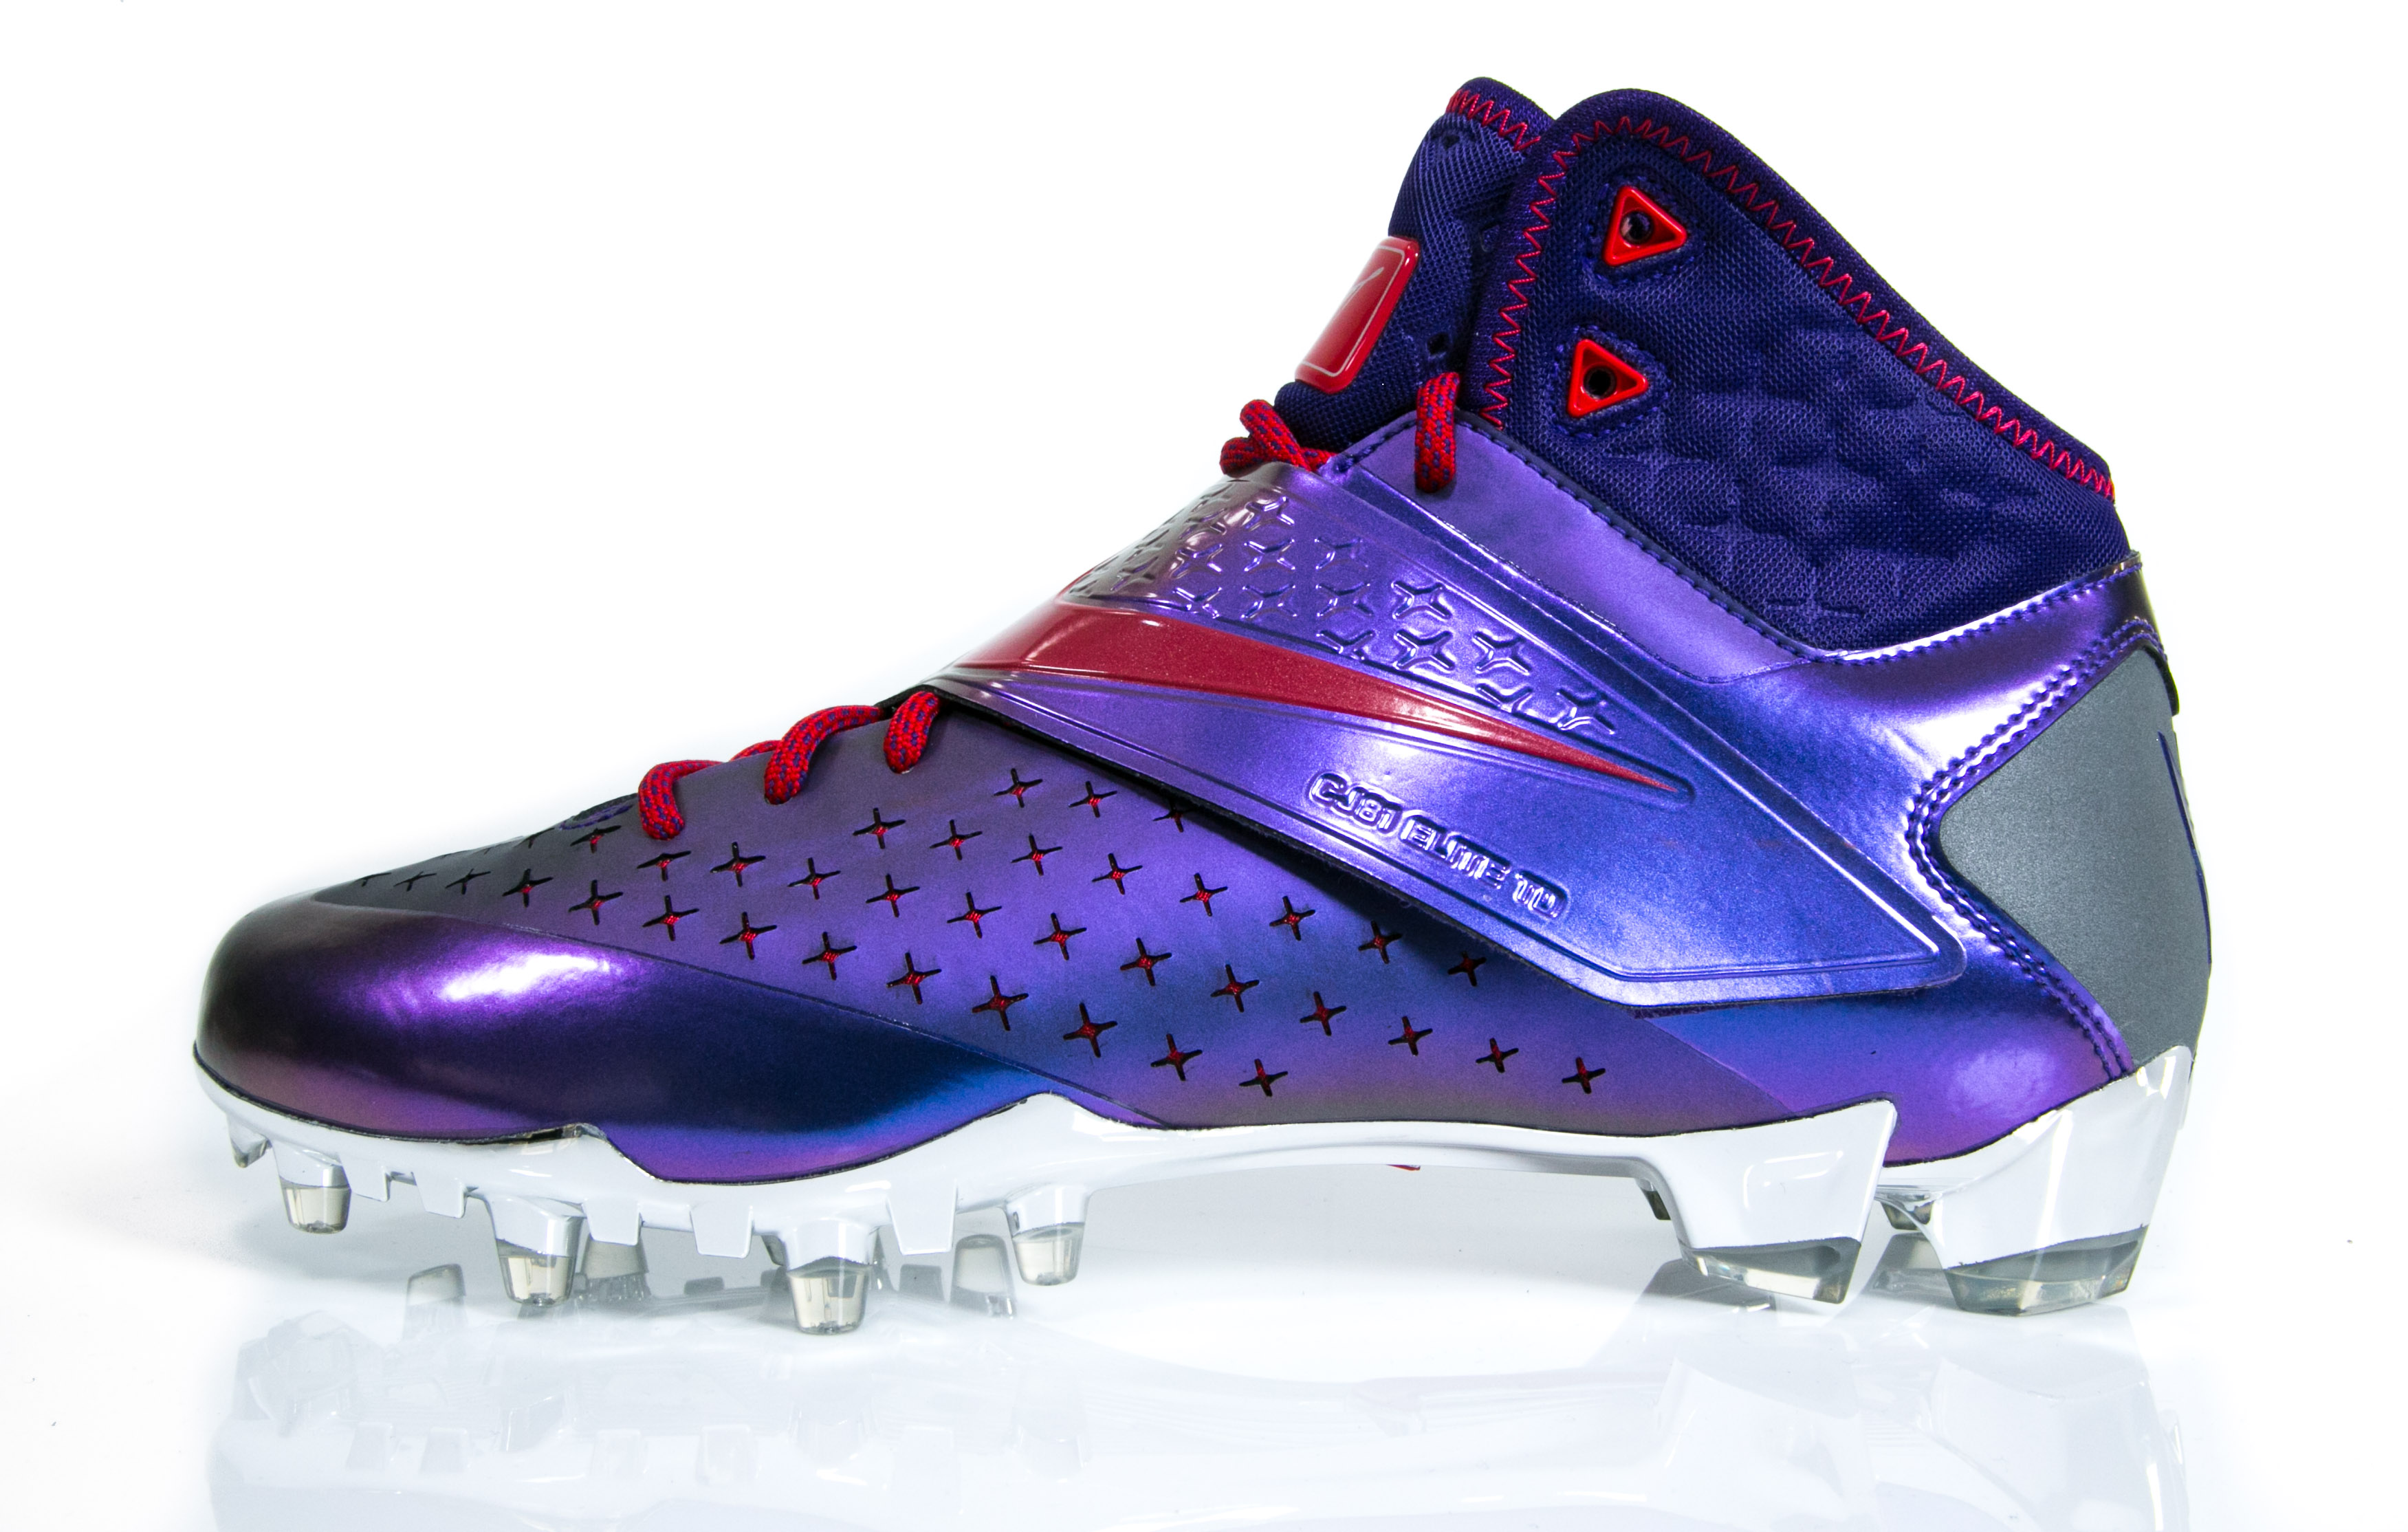 The special-edition Johnson cleat